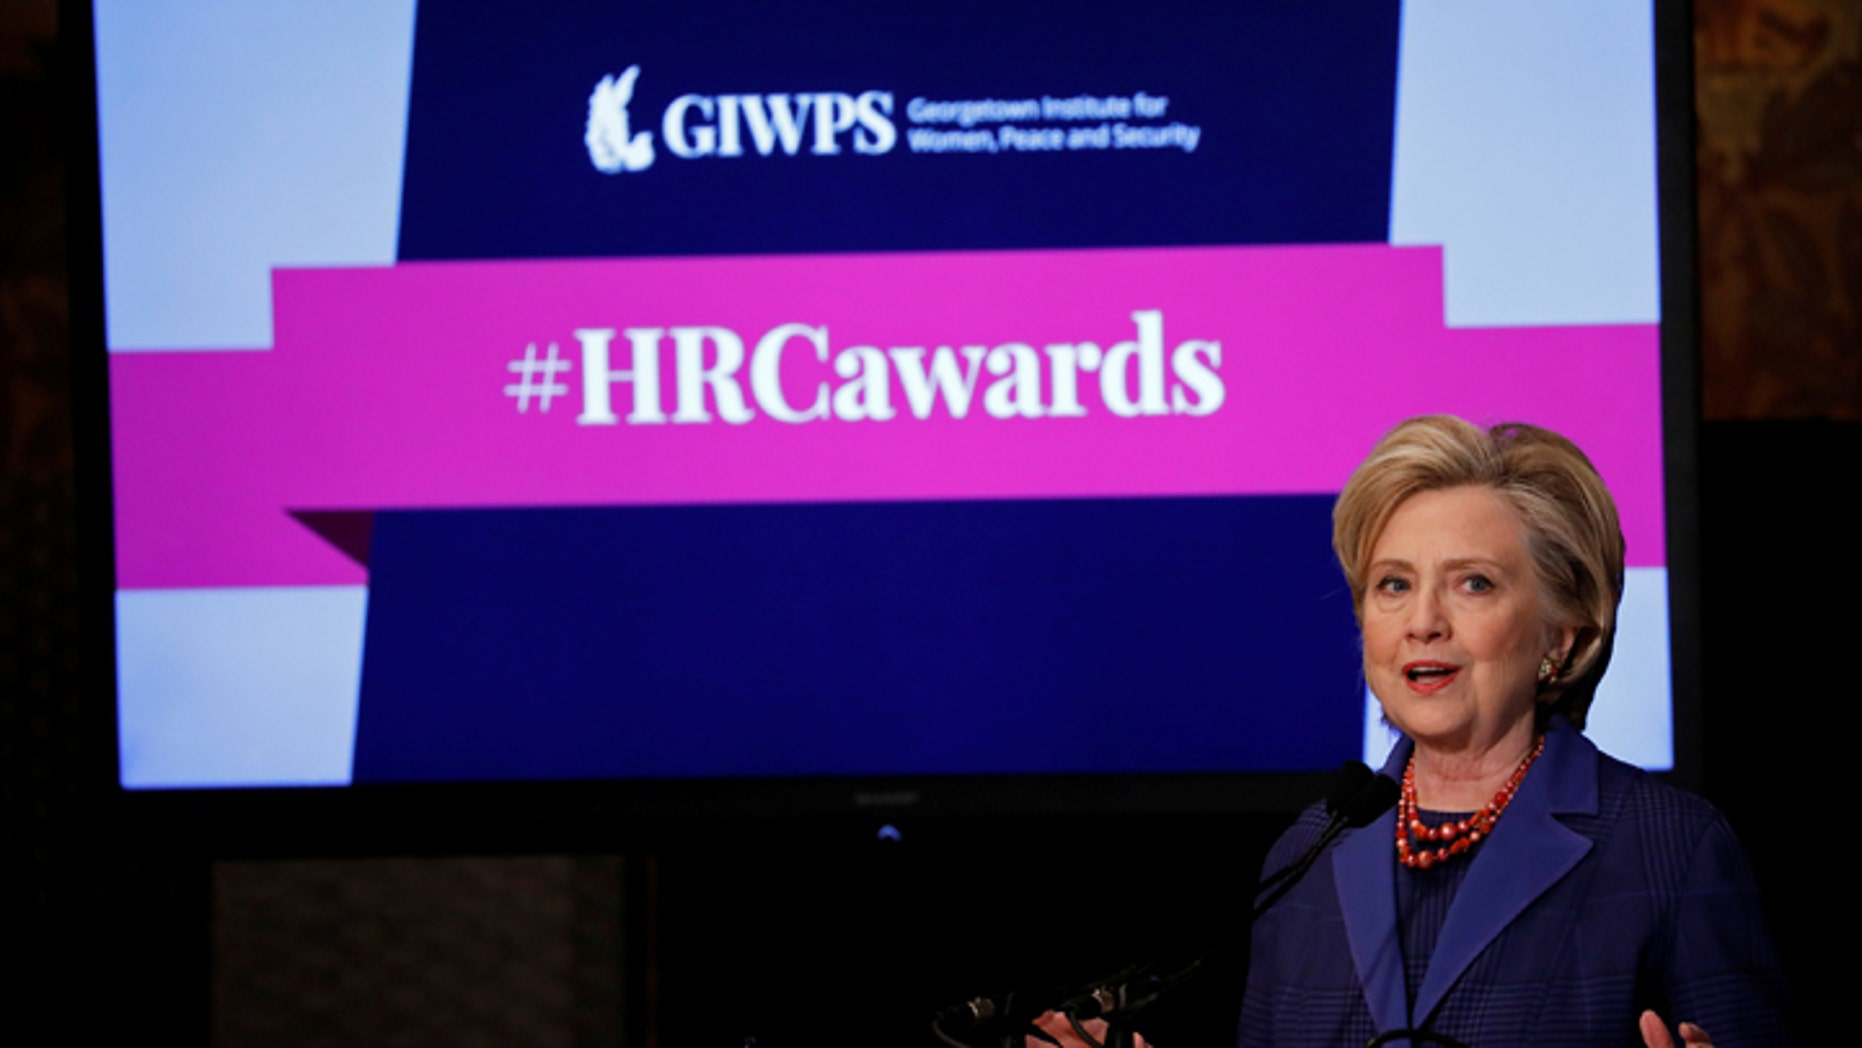 Former Secretary of State Hillary Clinton speaks at the annual Hillary Rodham Clinton awards ceremony at Georgetown University in Washington, U.S., February 5, 2018. REUTERS/Aaron P. Bernstein - RC1BCE802C30